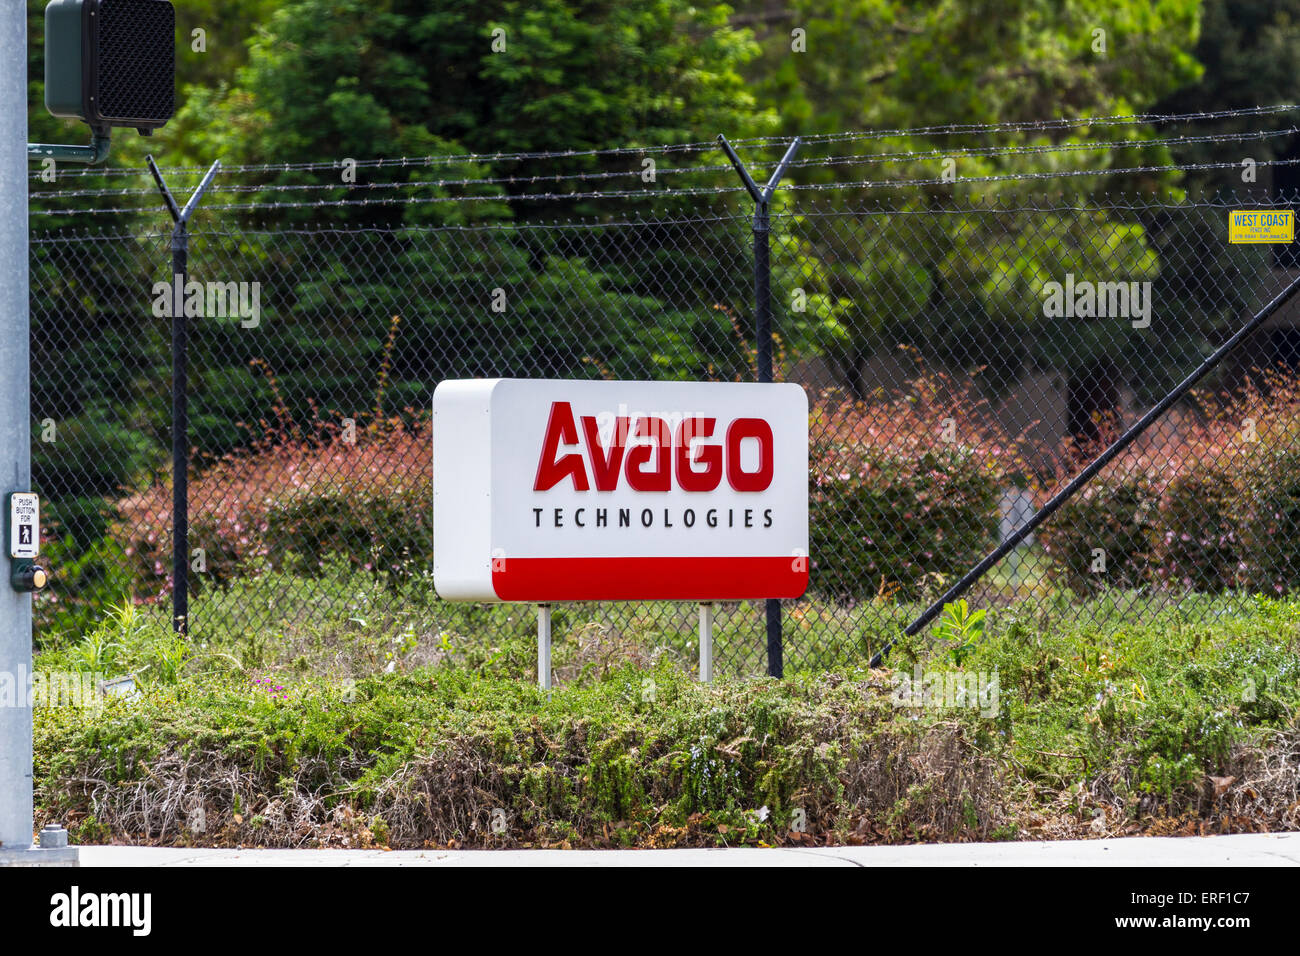 Avago Technologies is buying chip maker Broadcom Stock Photo